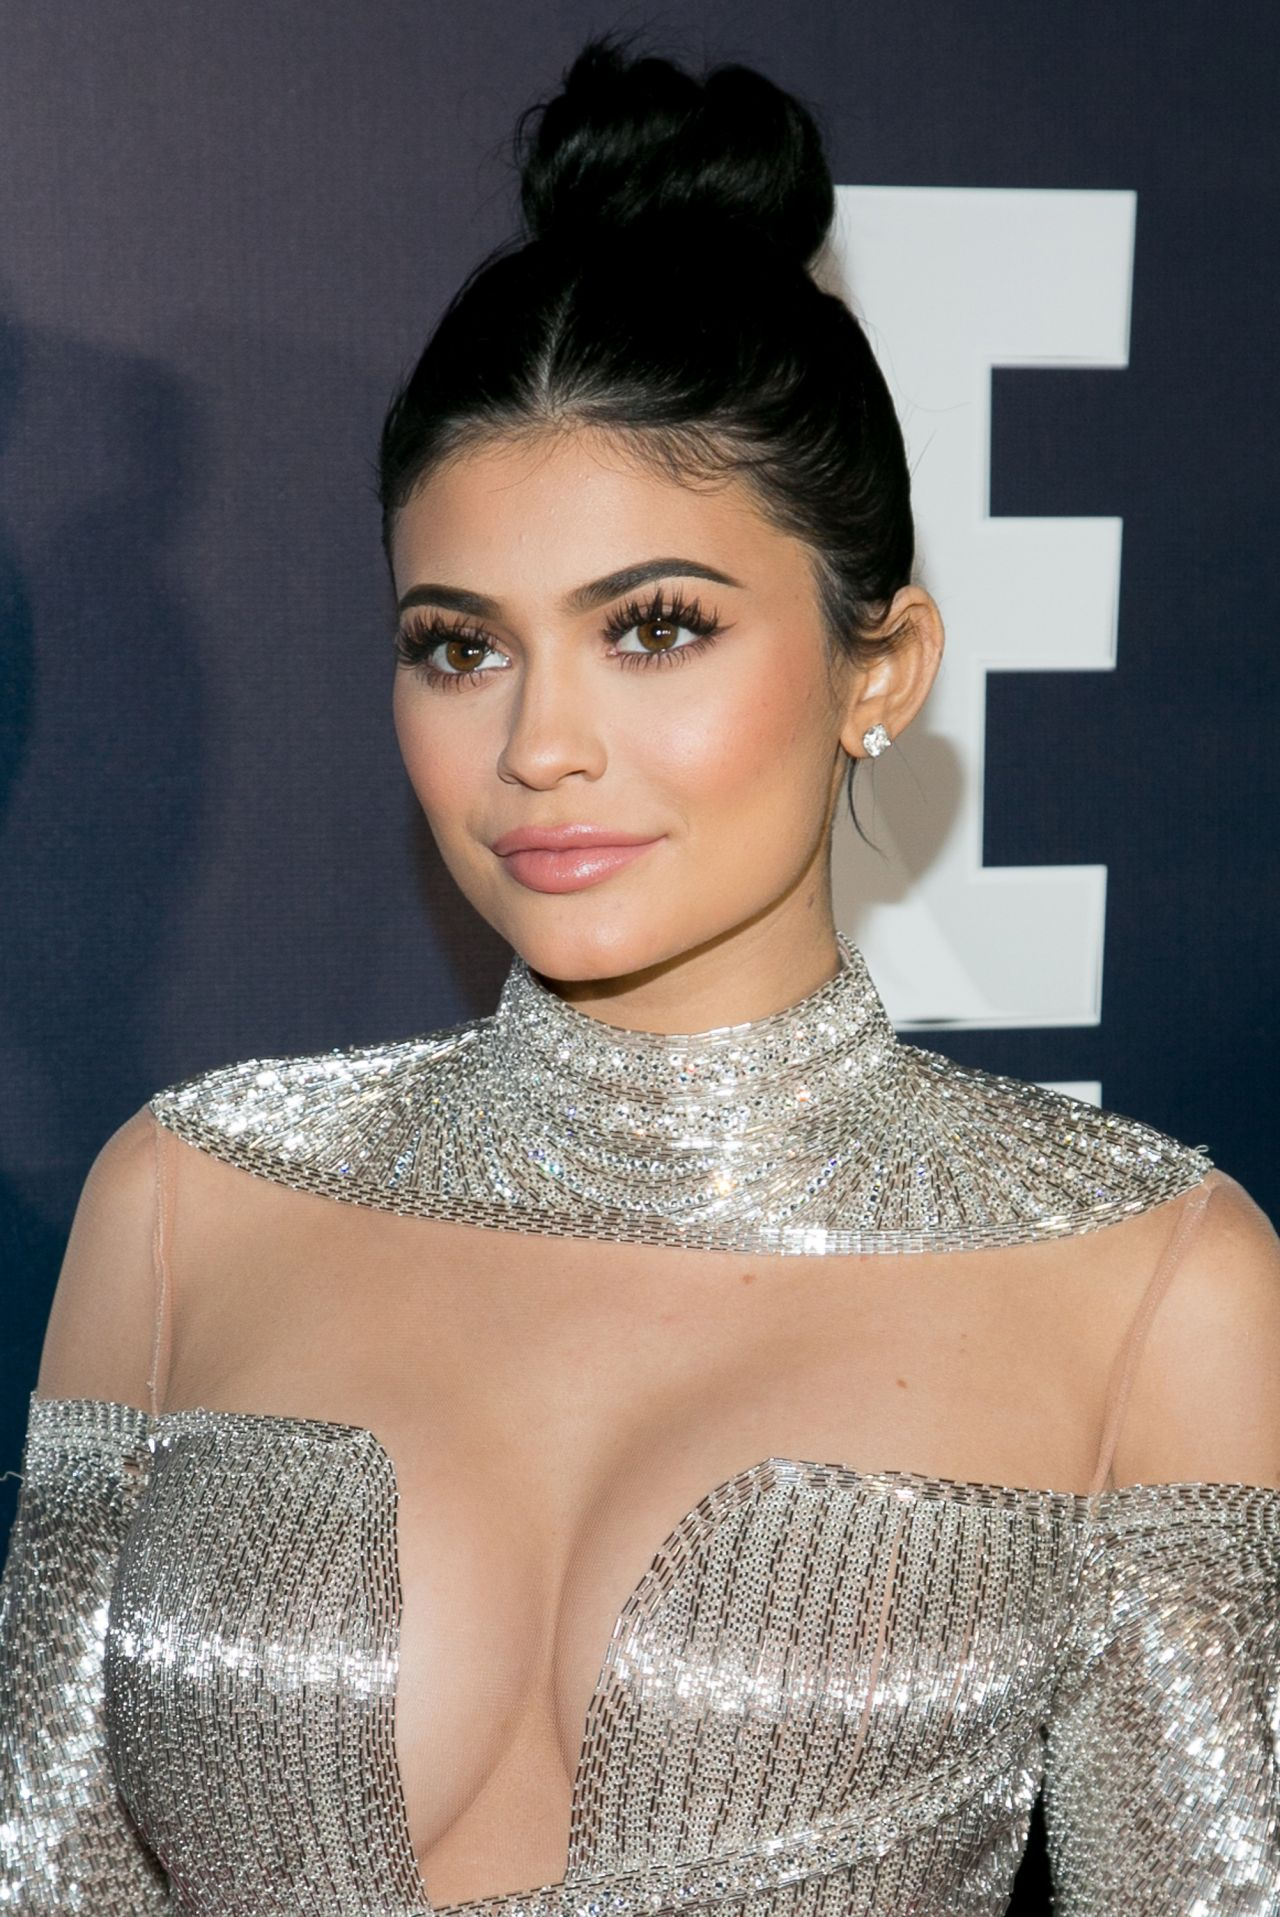 Kylie Jenner Arrives On The Red Carpet At Our Balmain X H: Universal, NBC, Focus Features, E